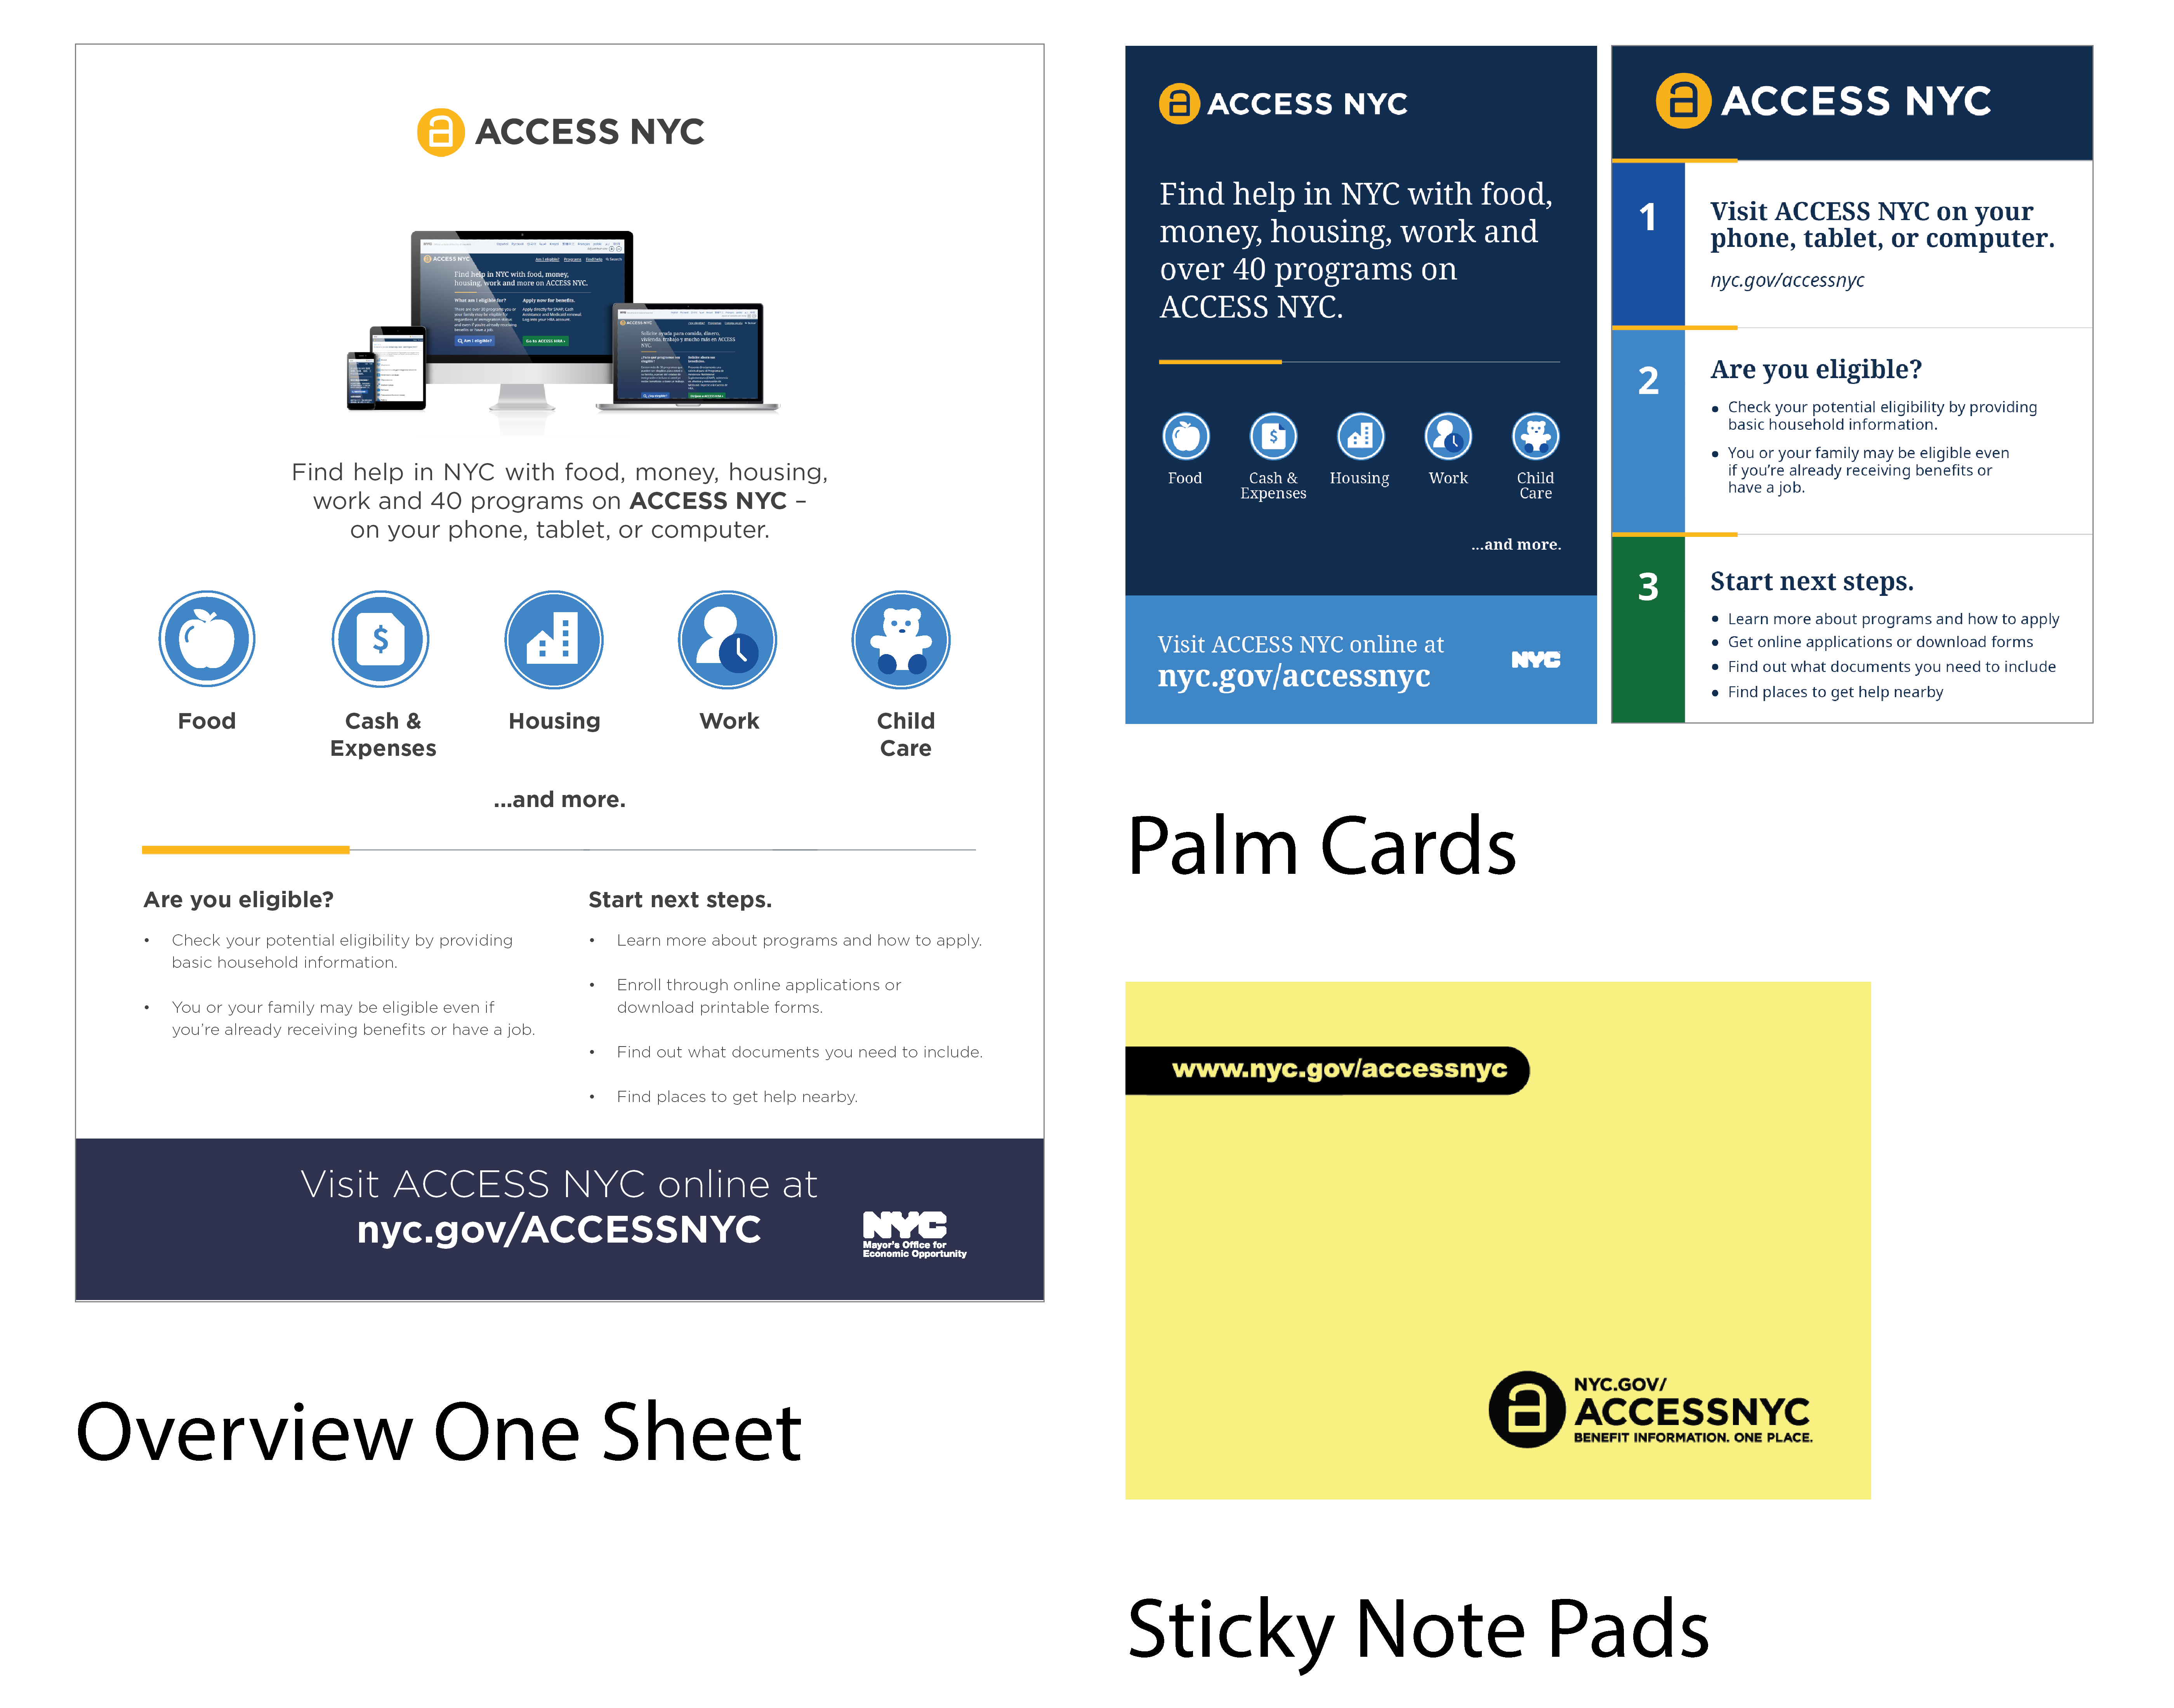 Five ACCESS NYC promotional materials in a row including an overview one sheet, small poster, big poster, palm cards, and sticky note pads.